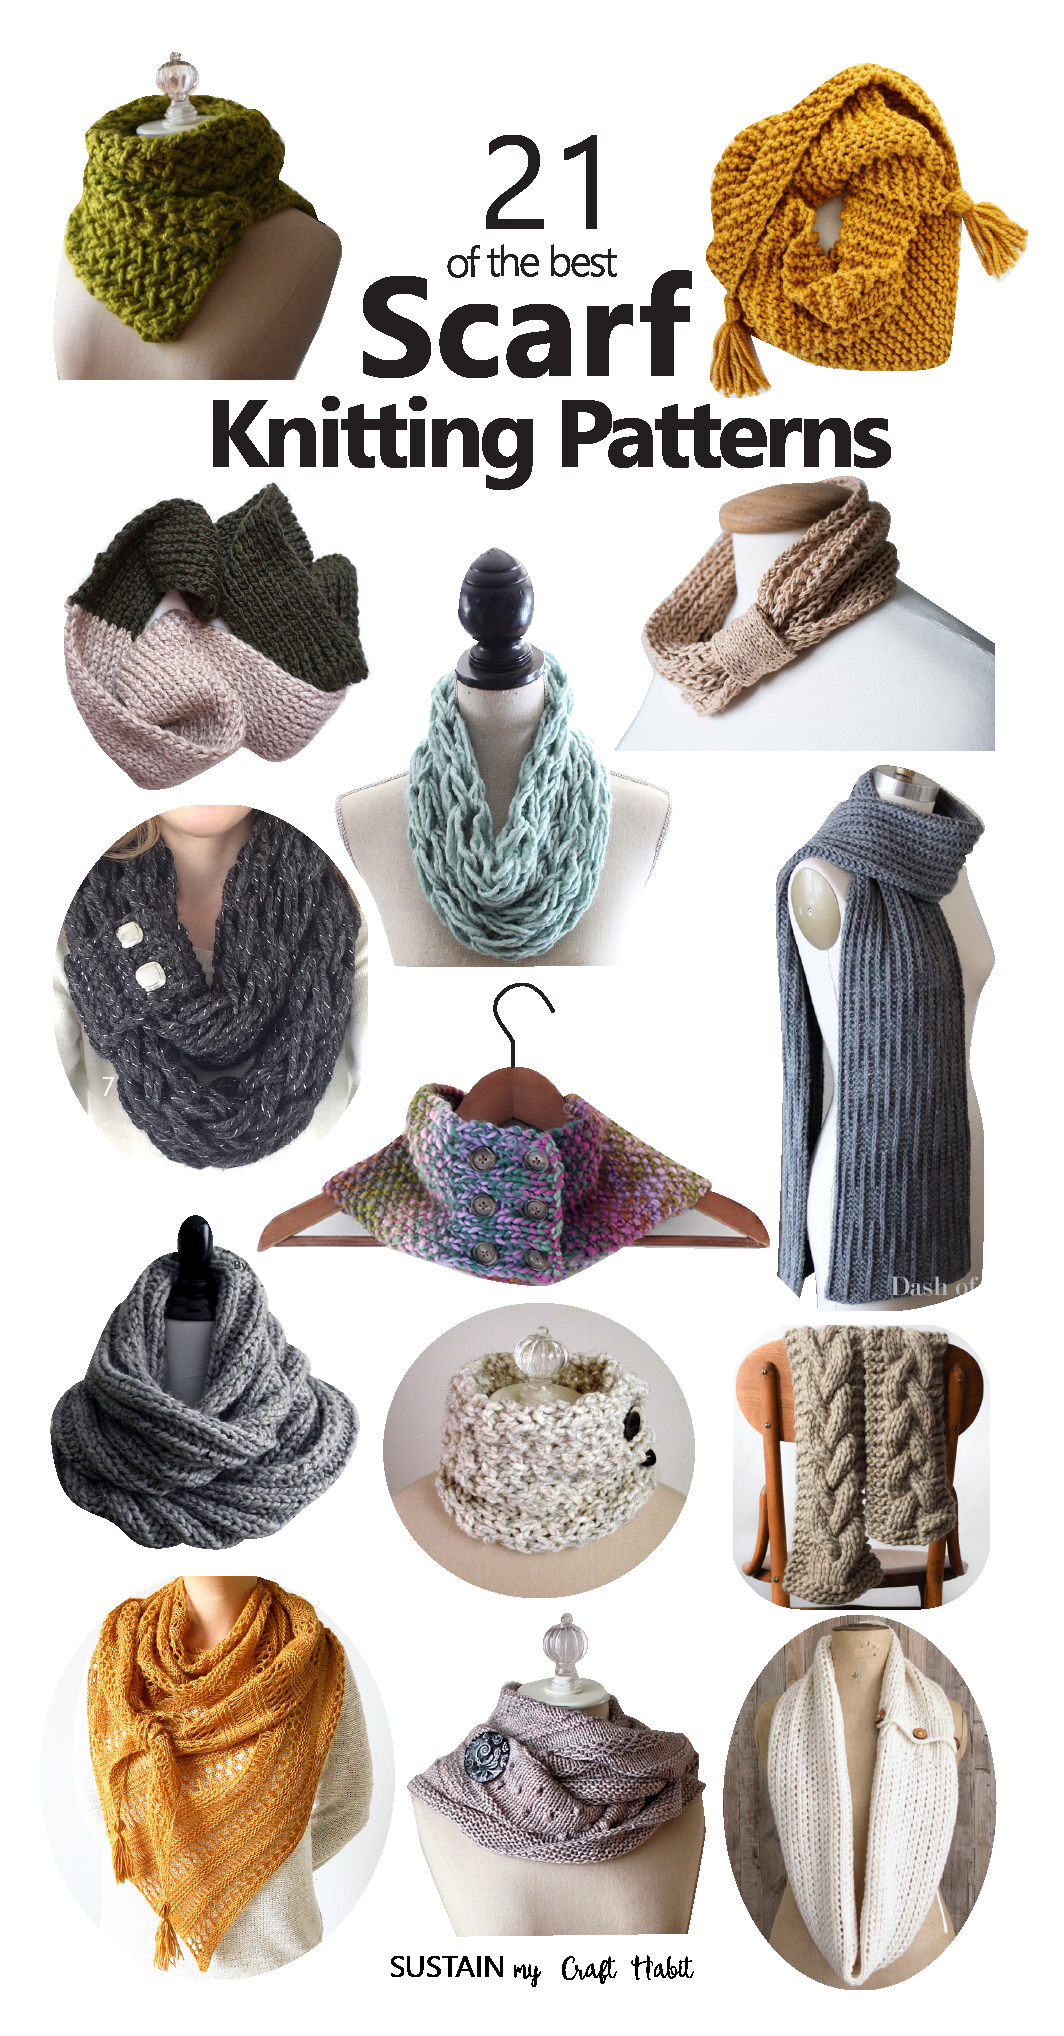 How To Knit A Ruffle Scarf Free Pattern 21 Of The Best Scarf Knitting Patterns Sustain My Craft Habit